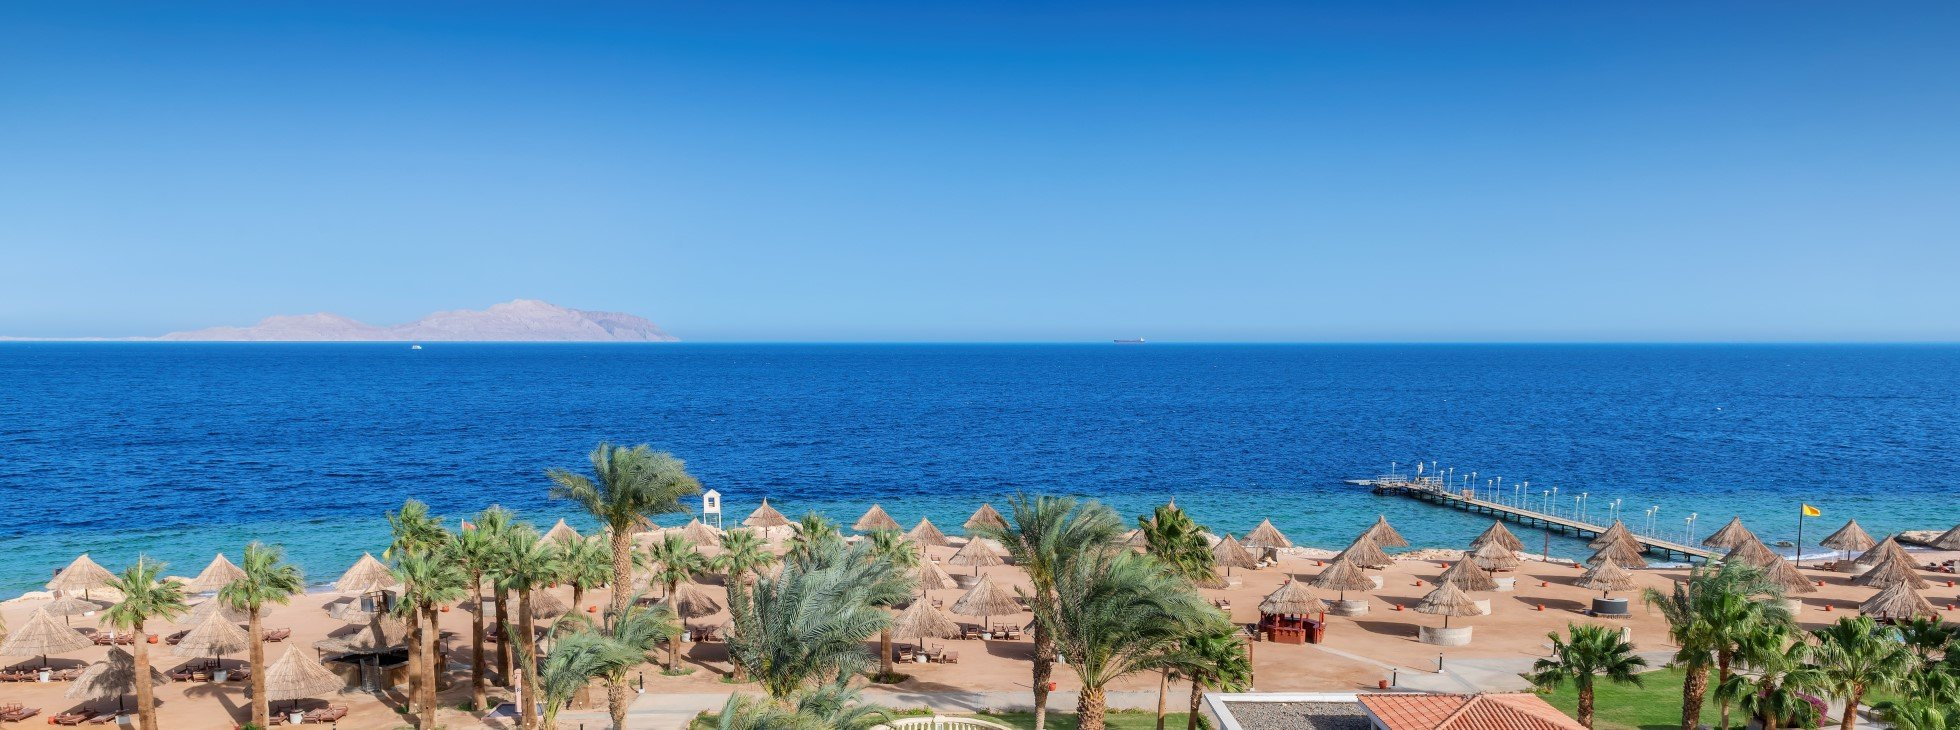 Panoramic view of sunny beach in tropical resort in Red Sea coast in Egypt, Africa